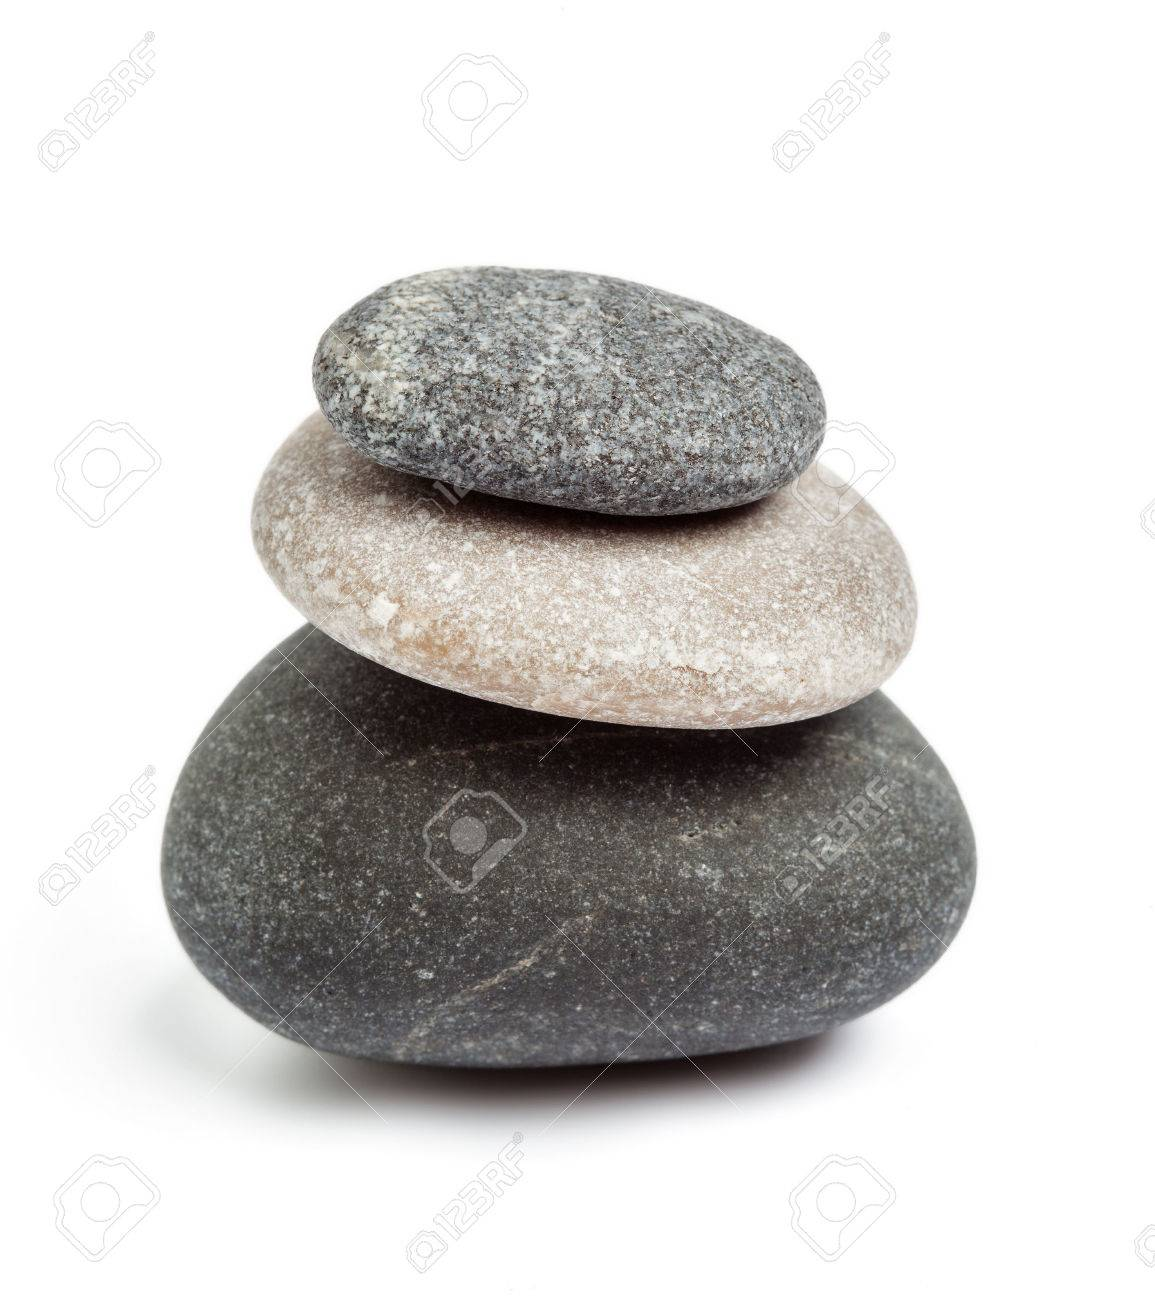 Zen Stones Balance Concept Stock Photo Picture And Royalty Free